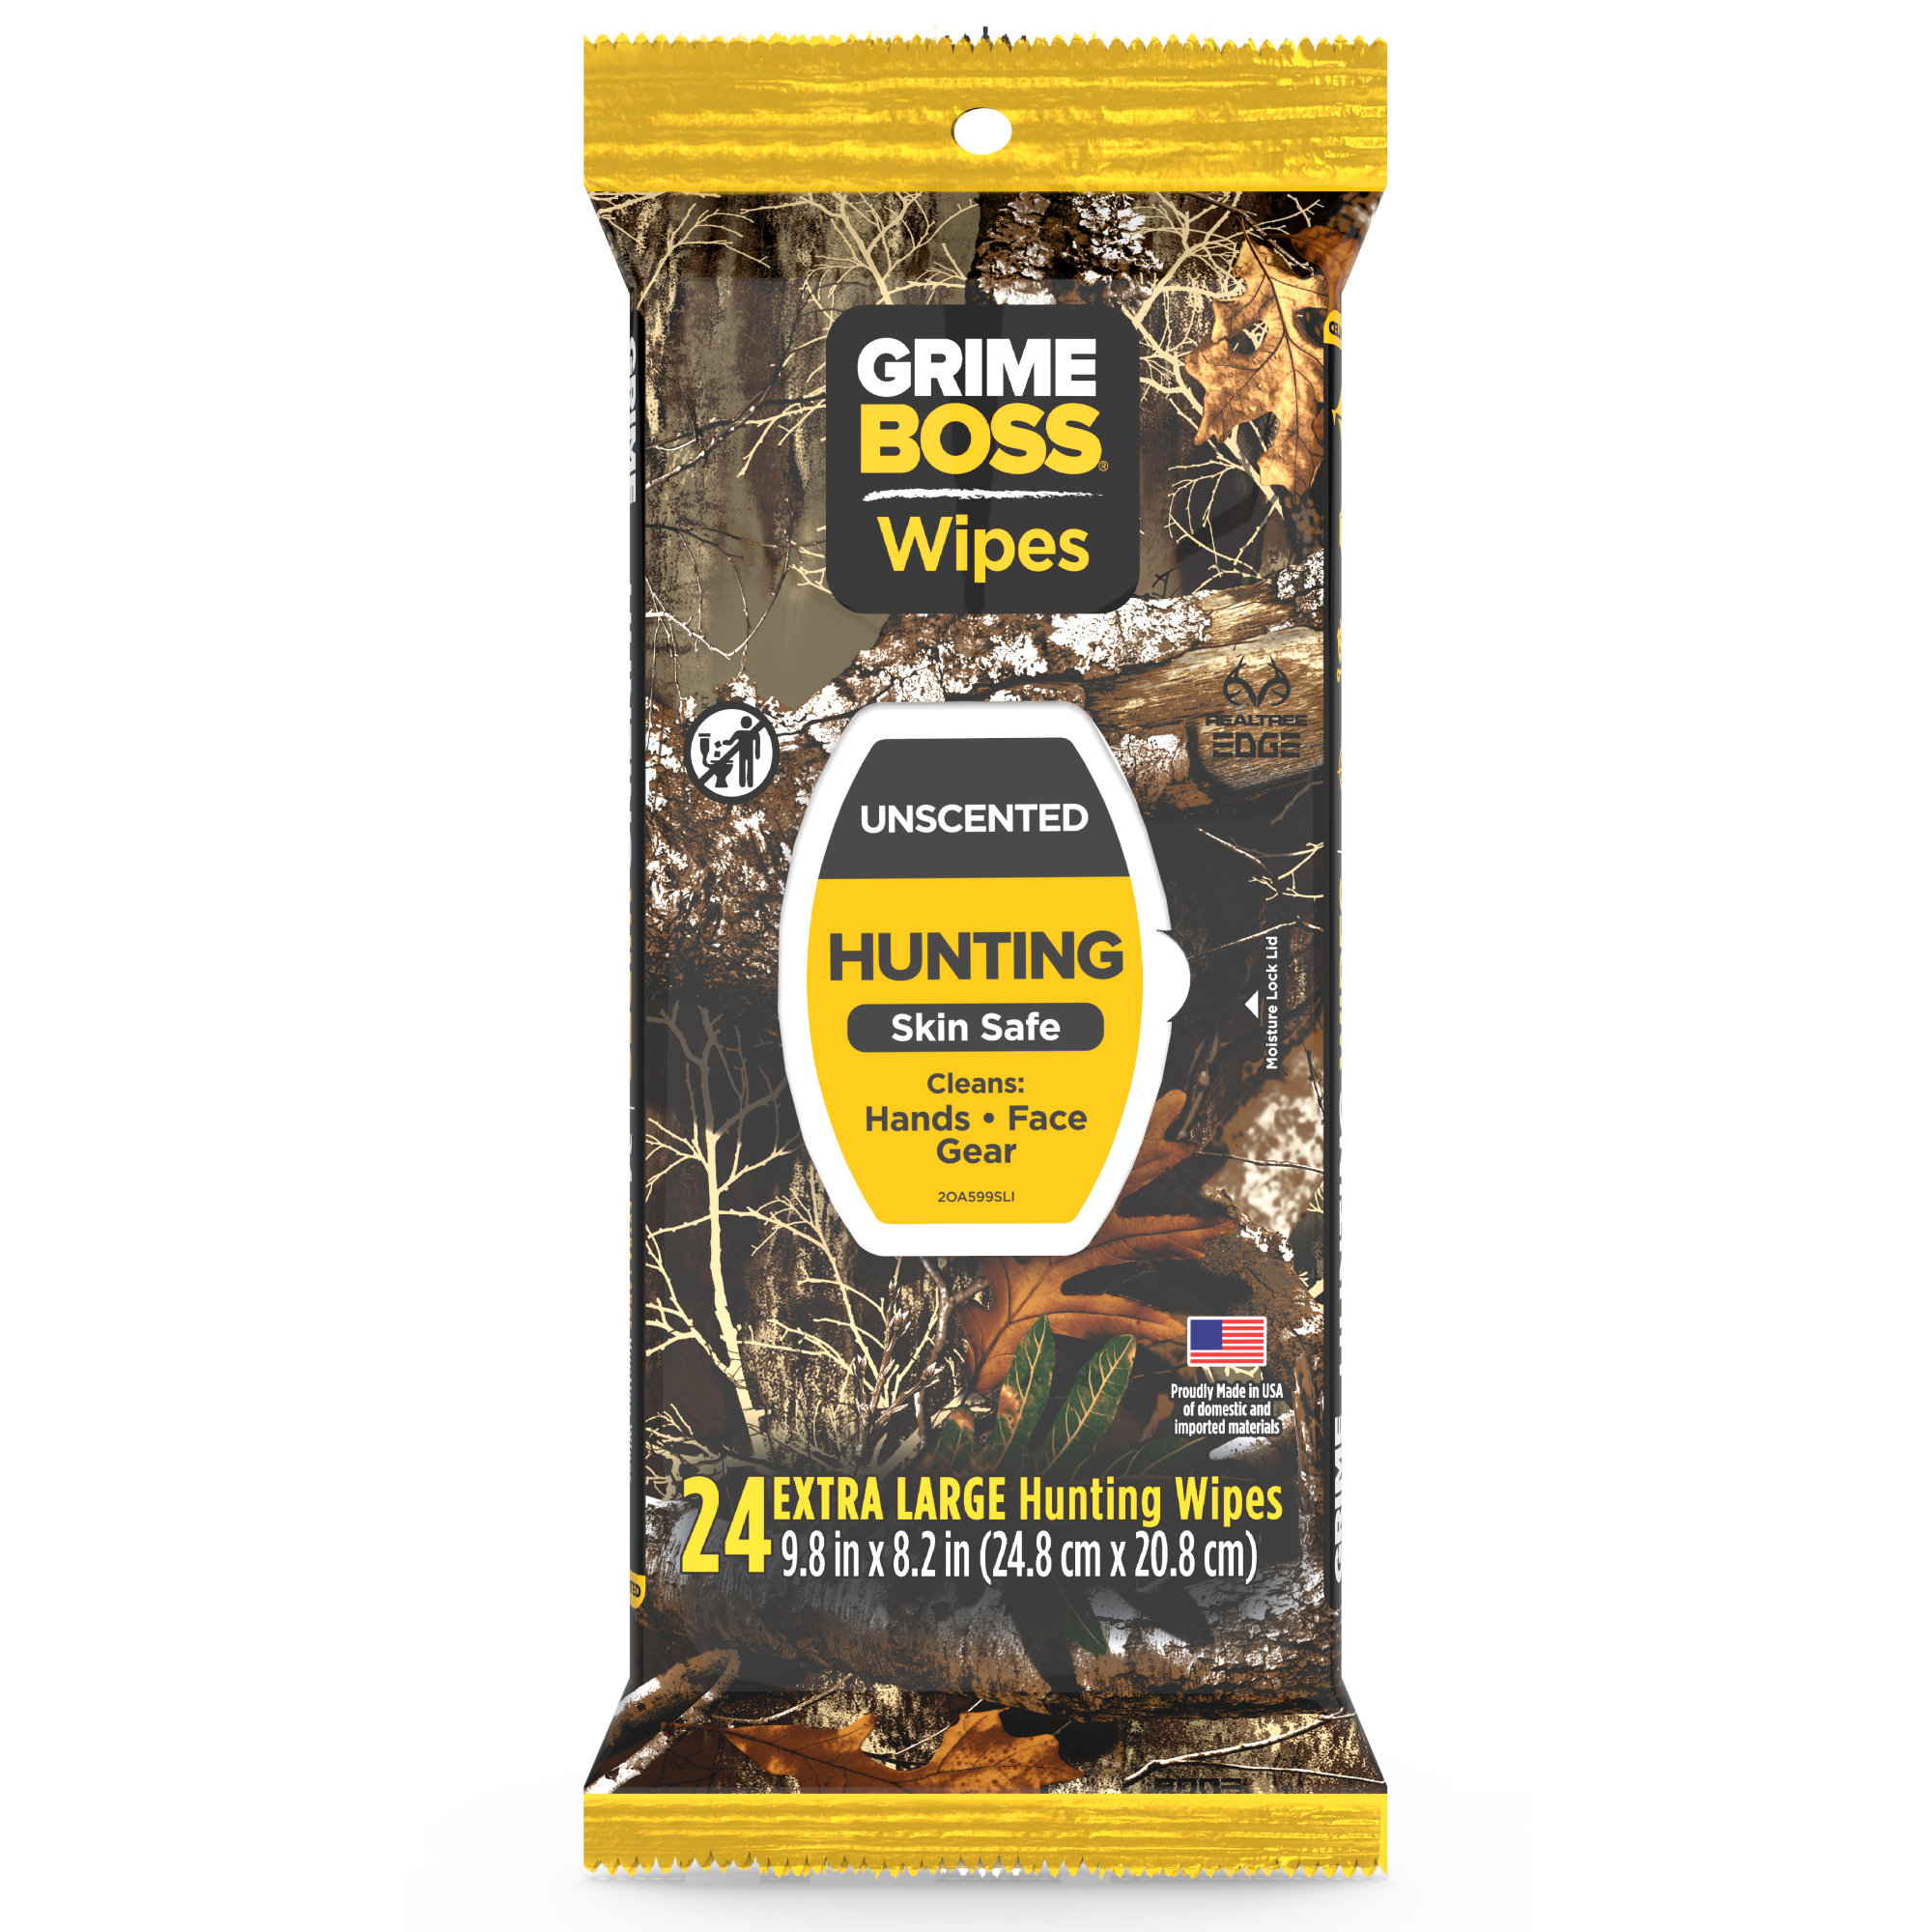 Grime Boss Hunting Wipes, 24CT